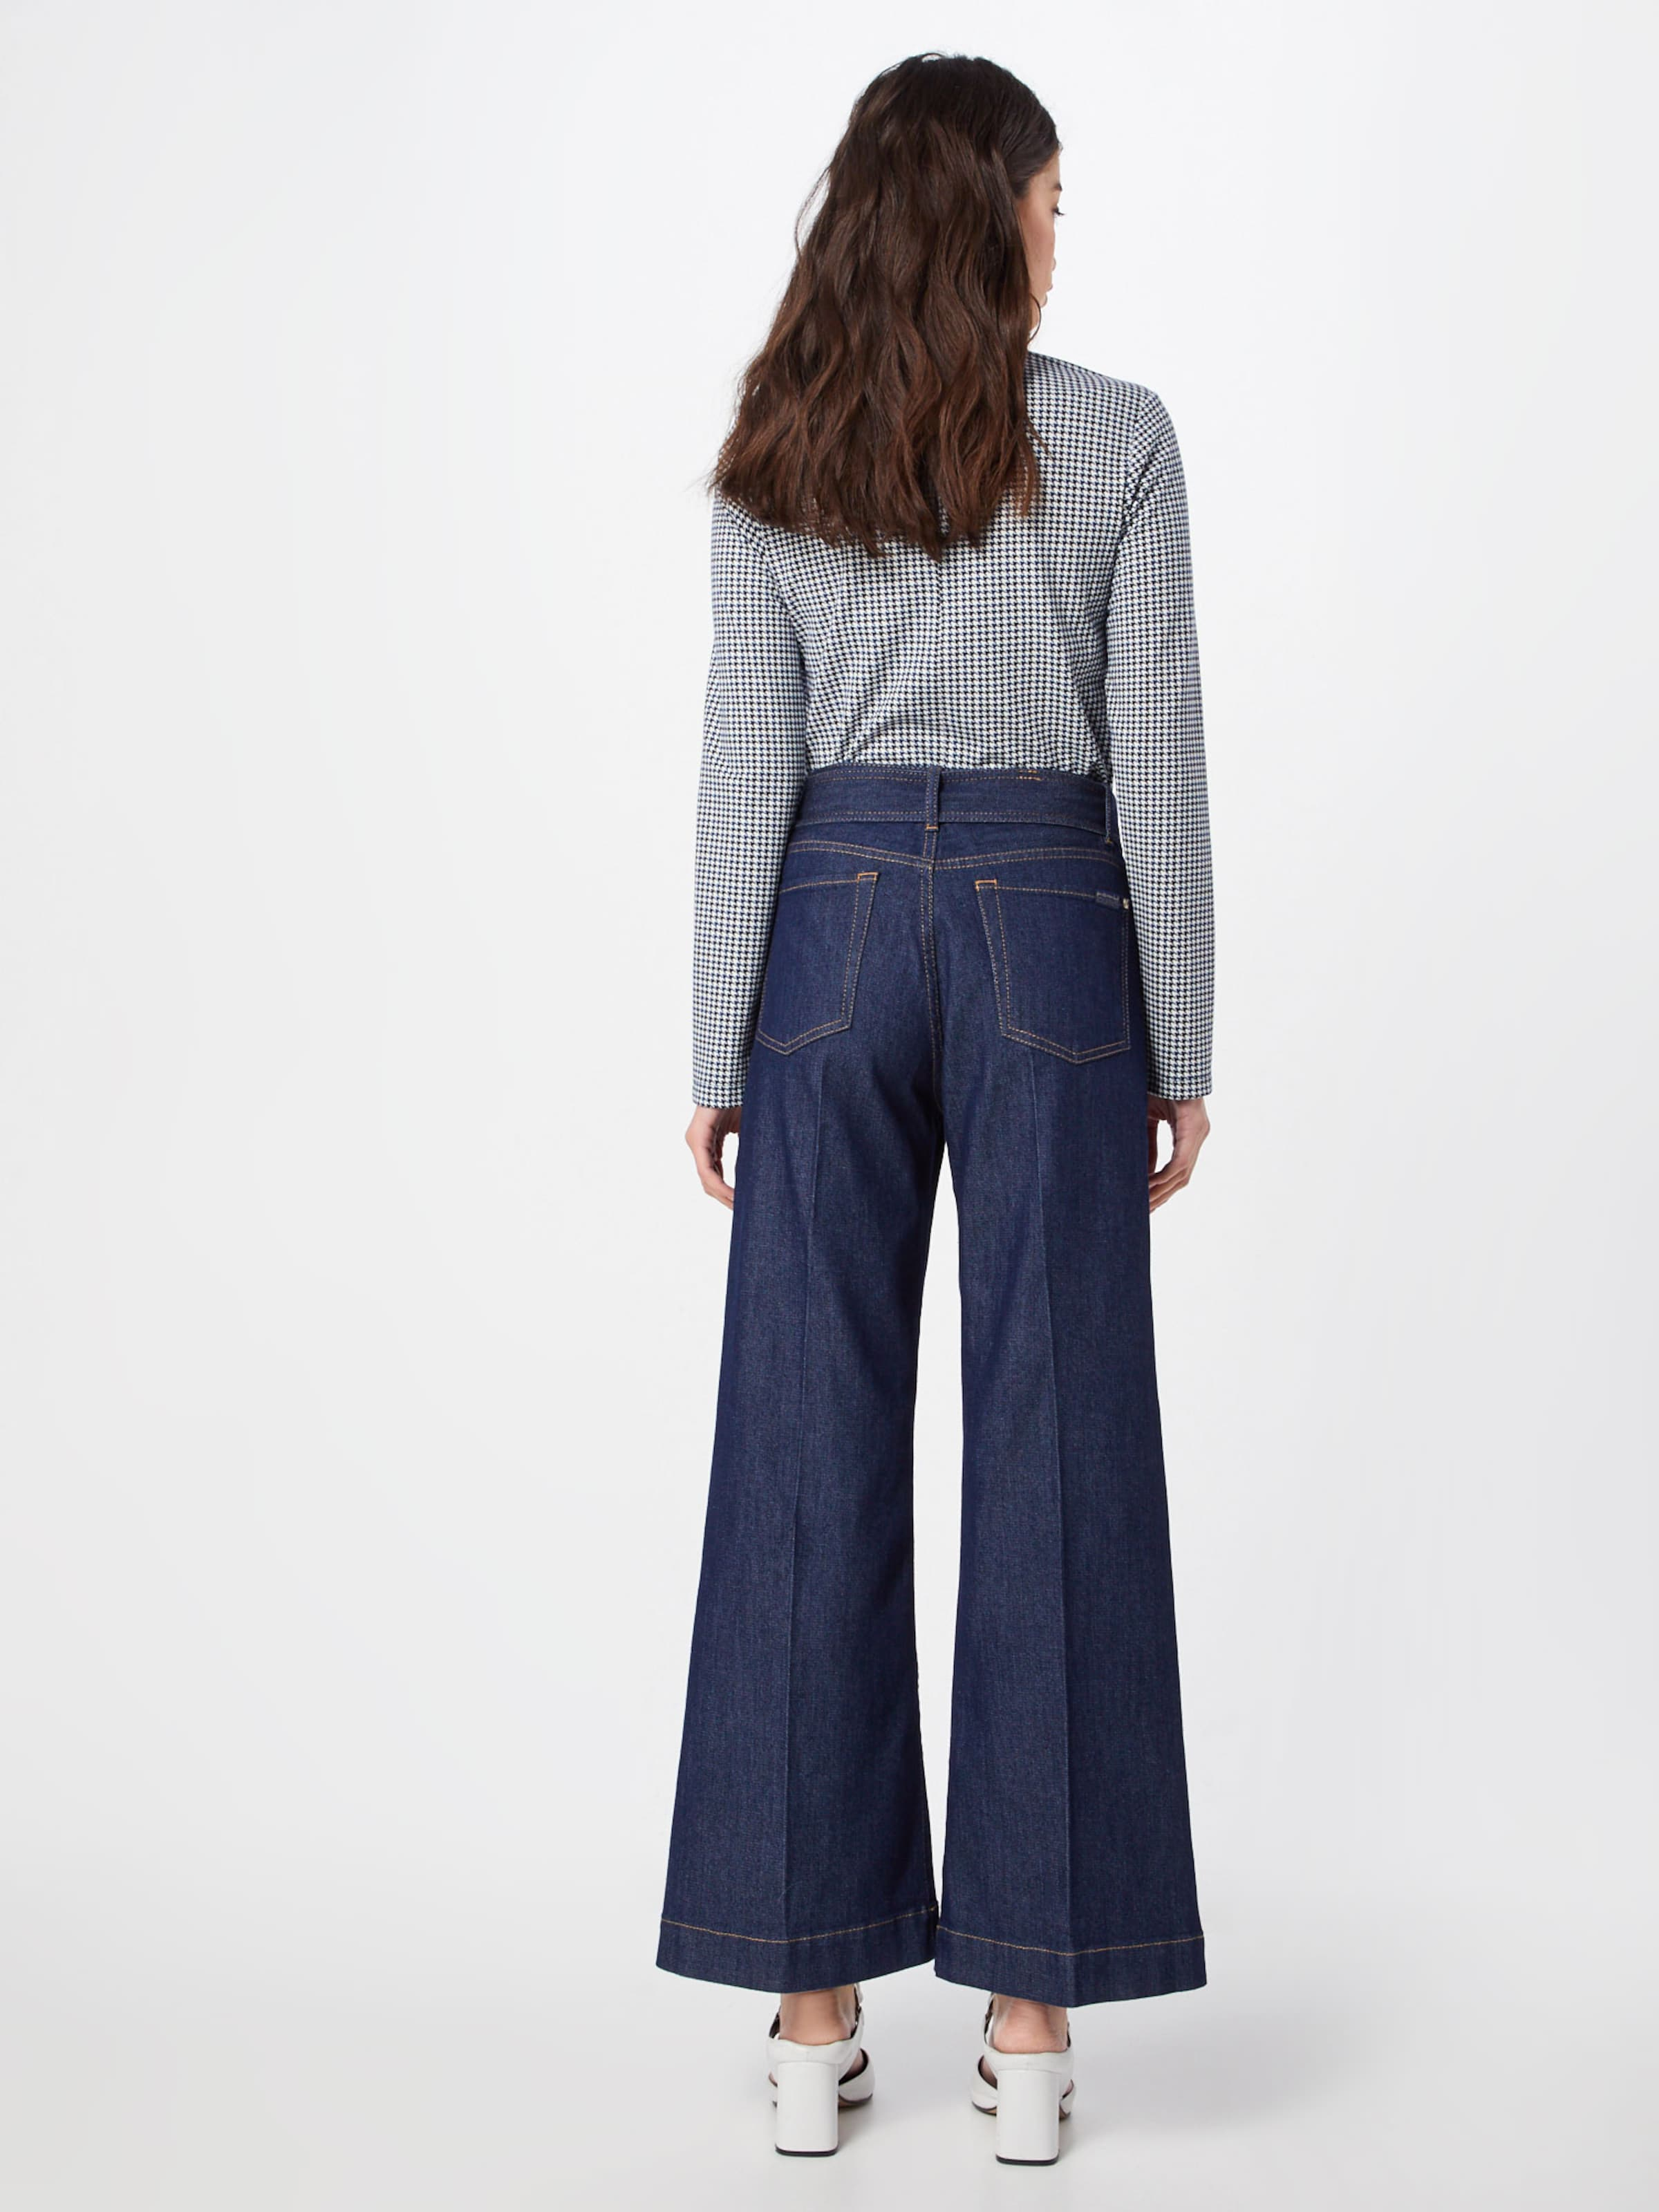 Cropped' 7 En All For 'lotta Bleu Mankind Jean 9WIH2DEY